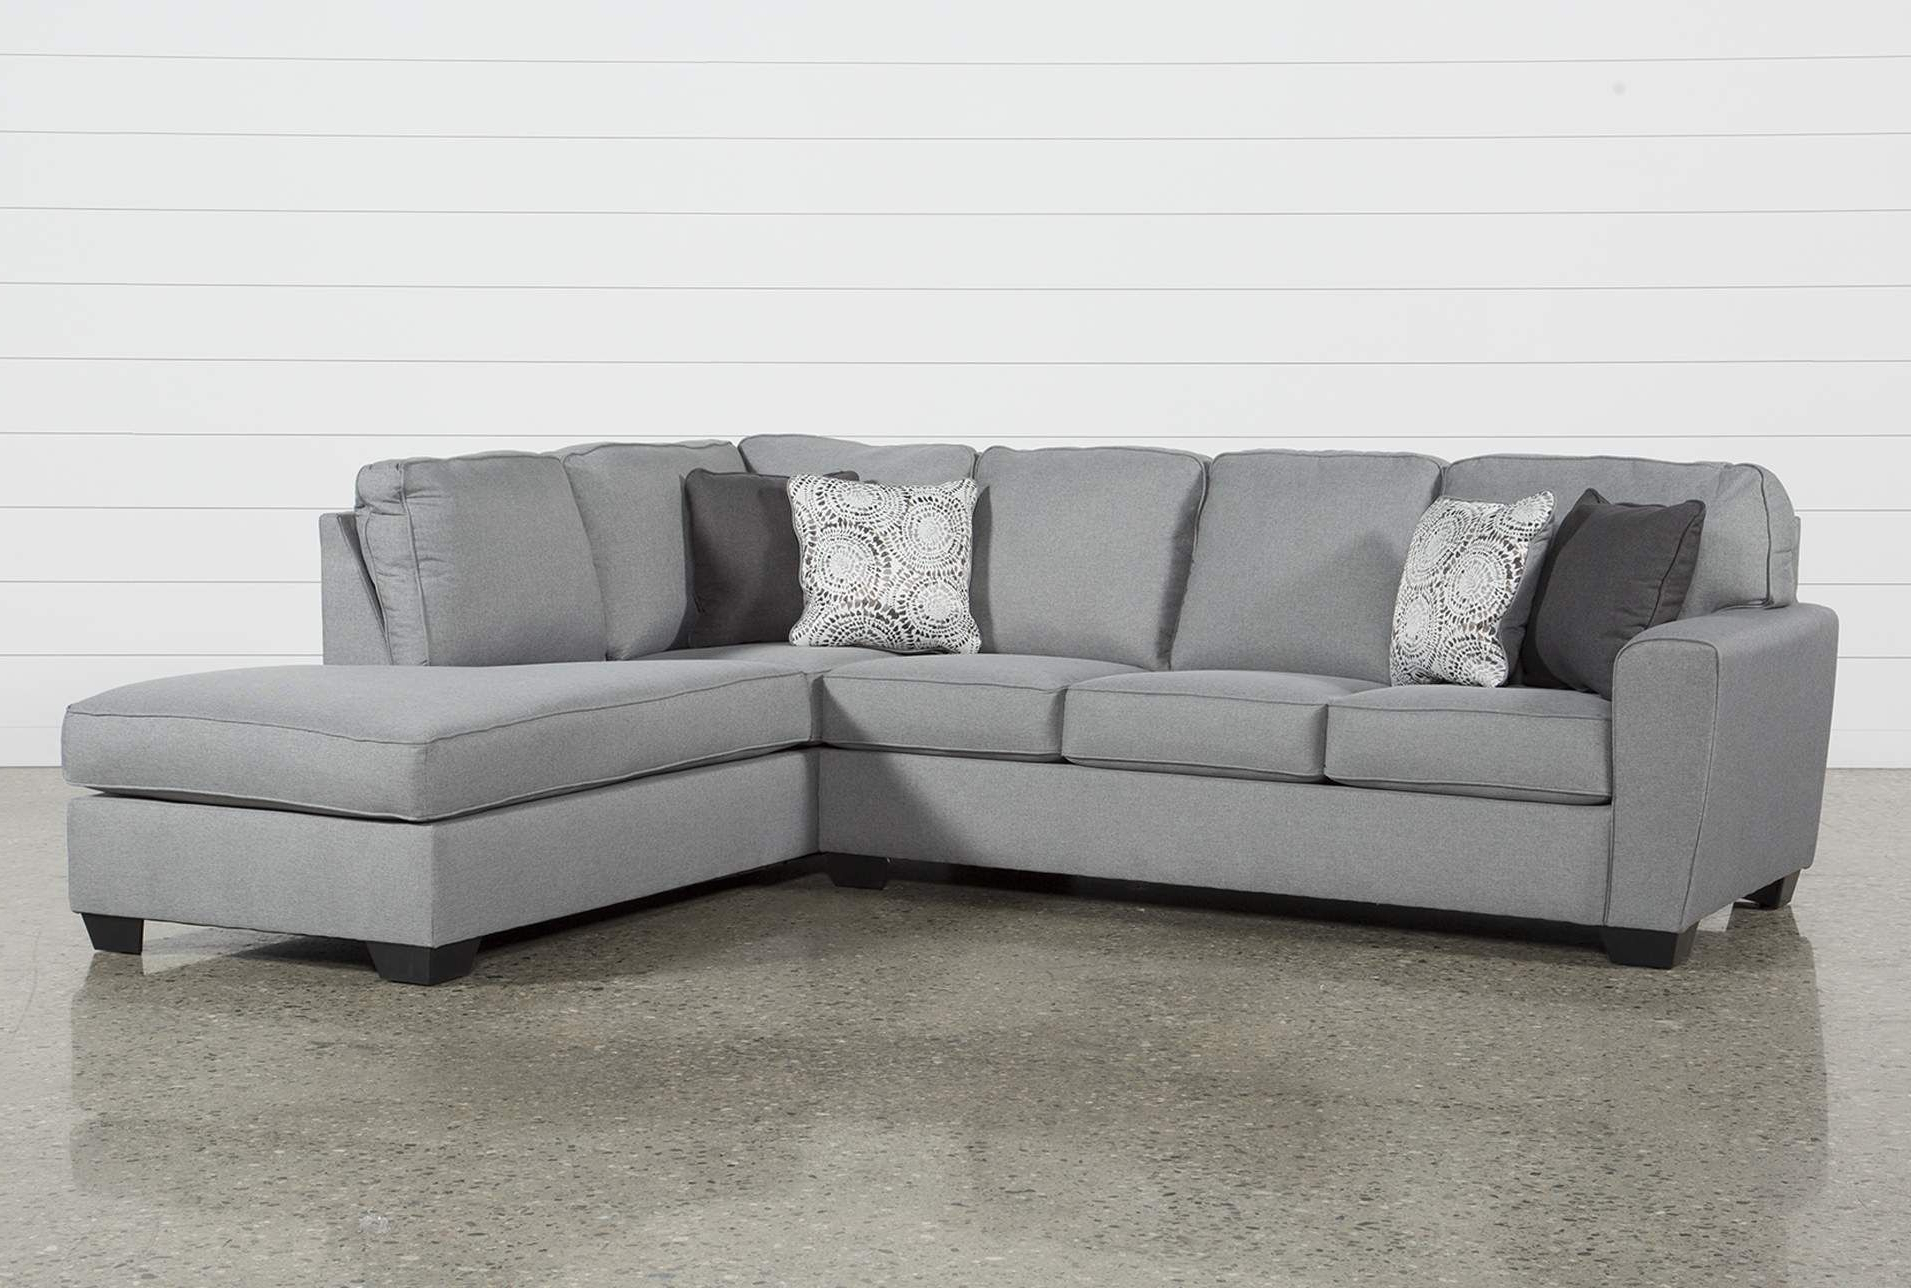 2019 Mcdade Ash 2 Piece Sectional W/raf Chaise (View 3 of 20)